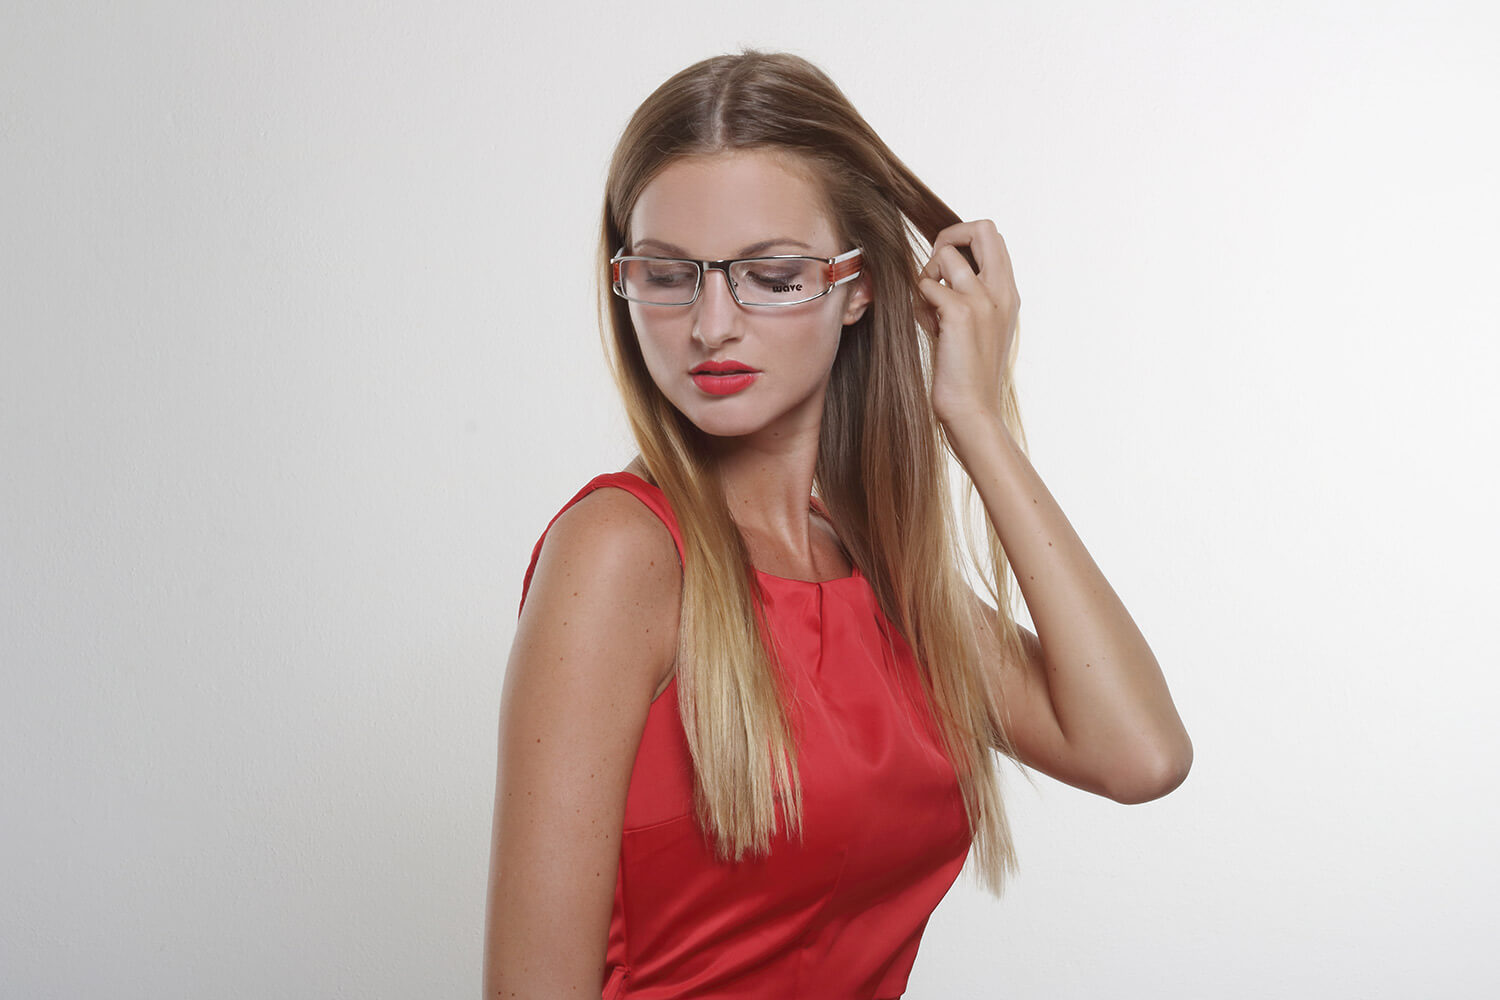 fashion photo of a woman in a red dress and eyeglasses